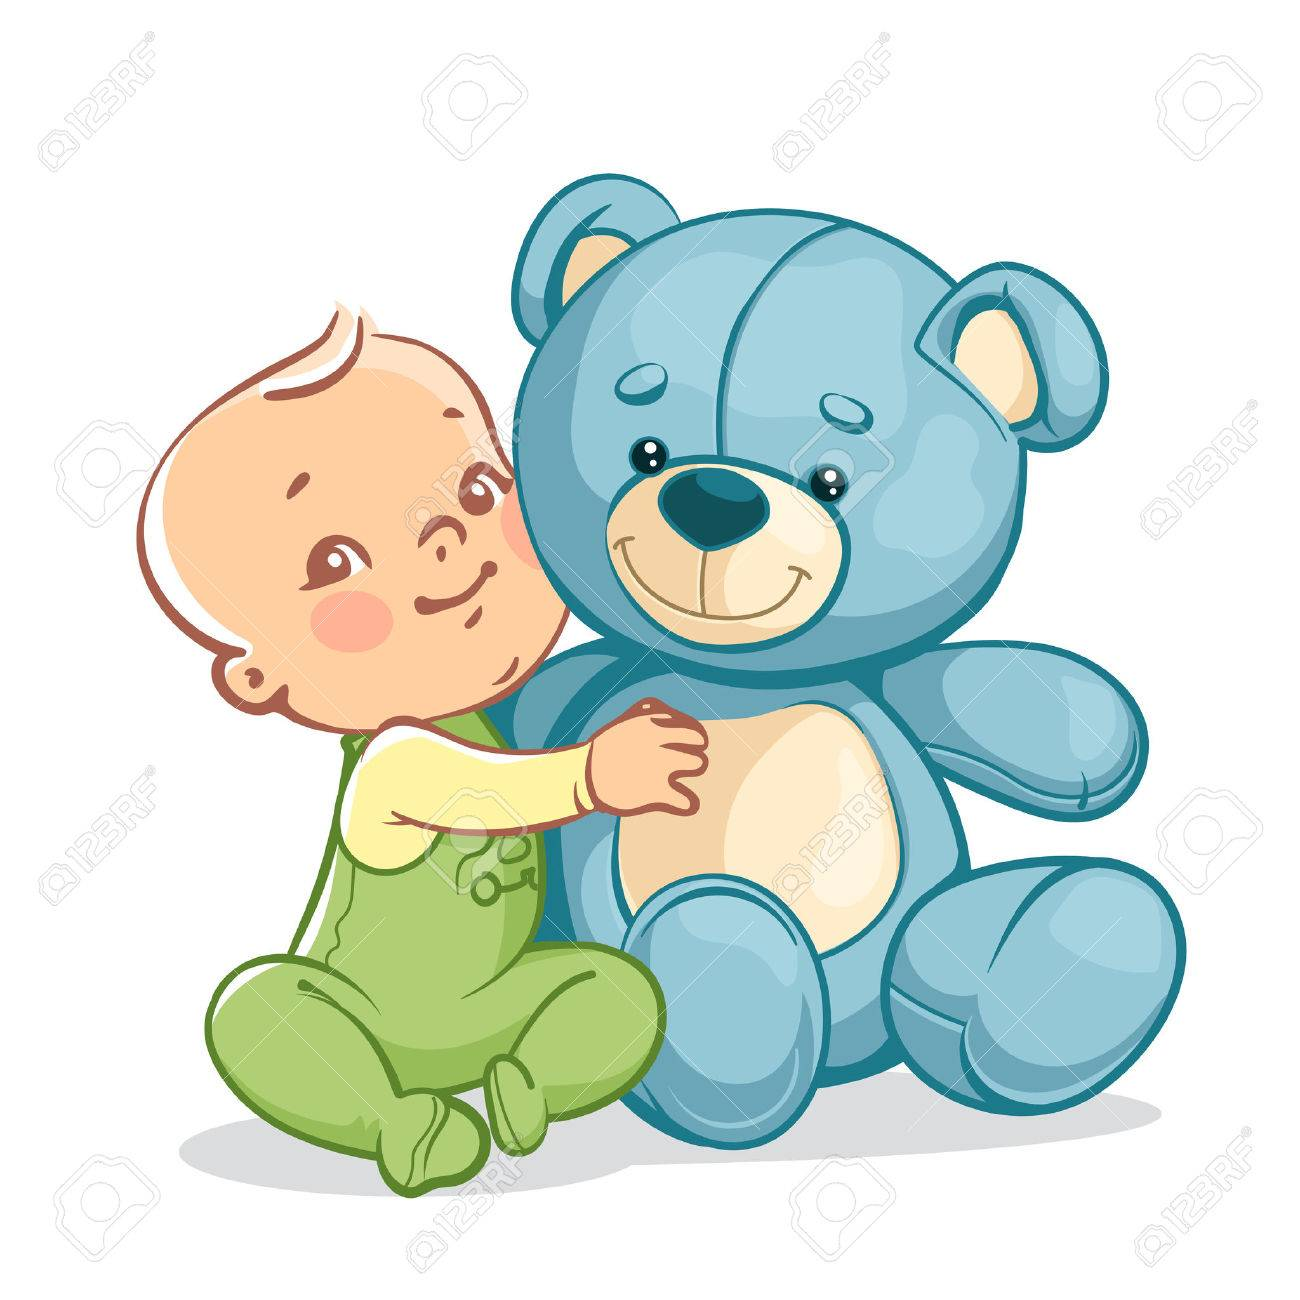 Little baby boy with big toy. One year kid holding teddy bear. Child playing with toy friend. Happy smiling baby sitting, hugging blue teddy bear. Vector illustration isolated on white background. - 63351923